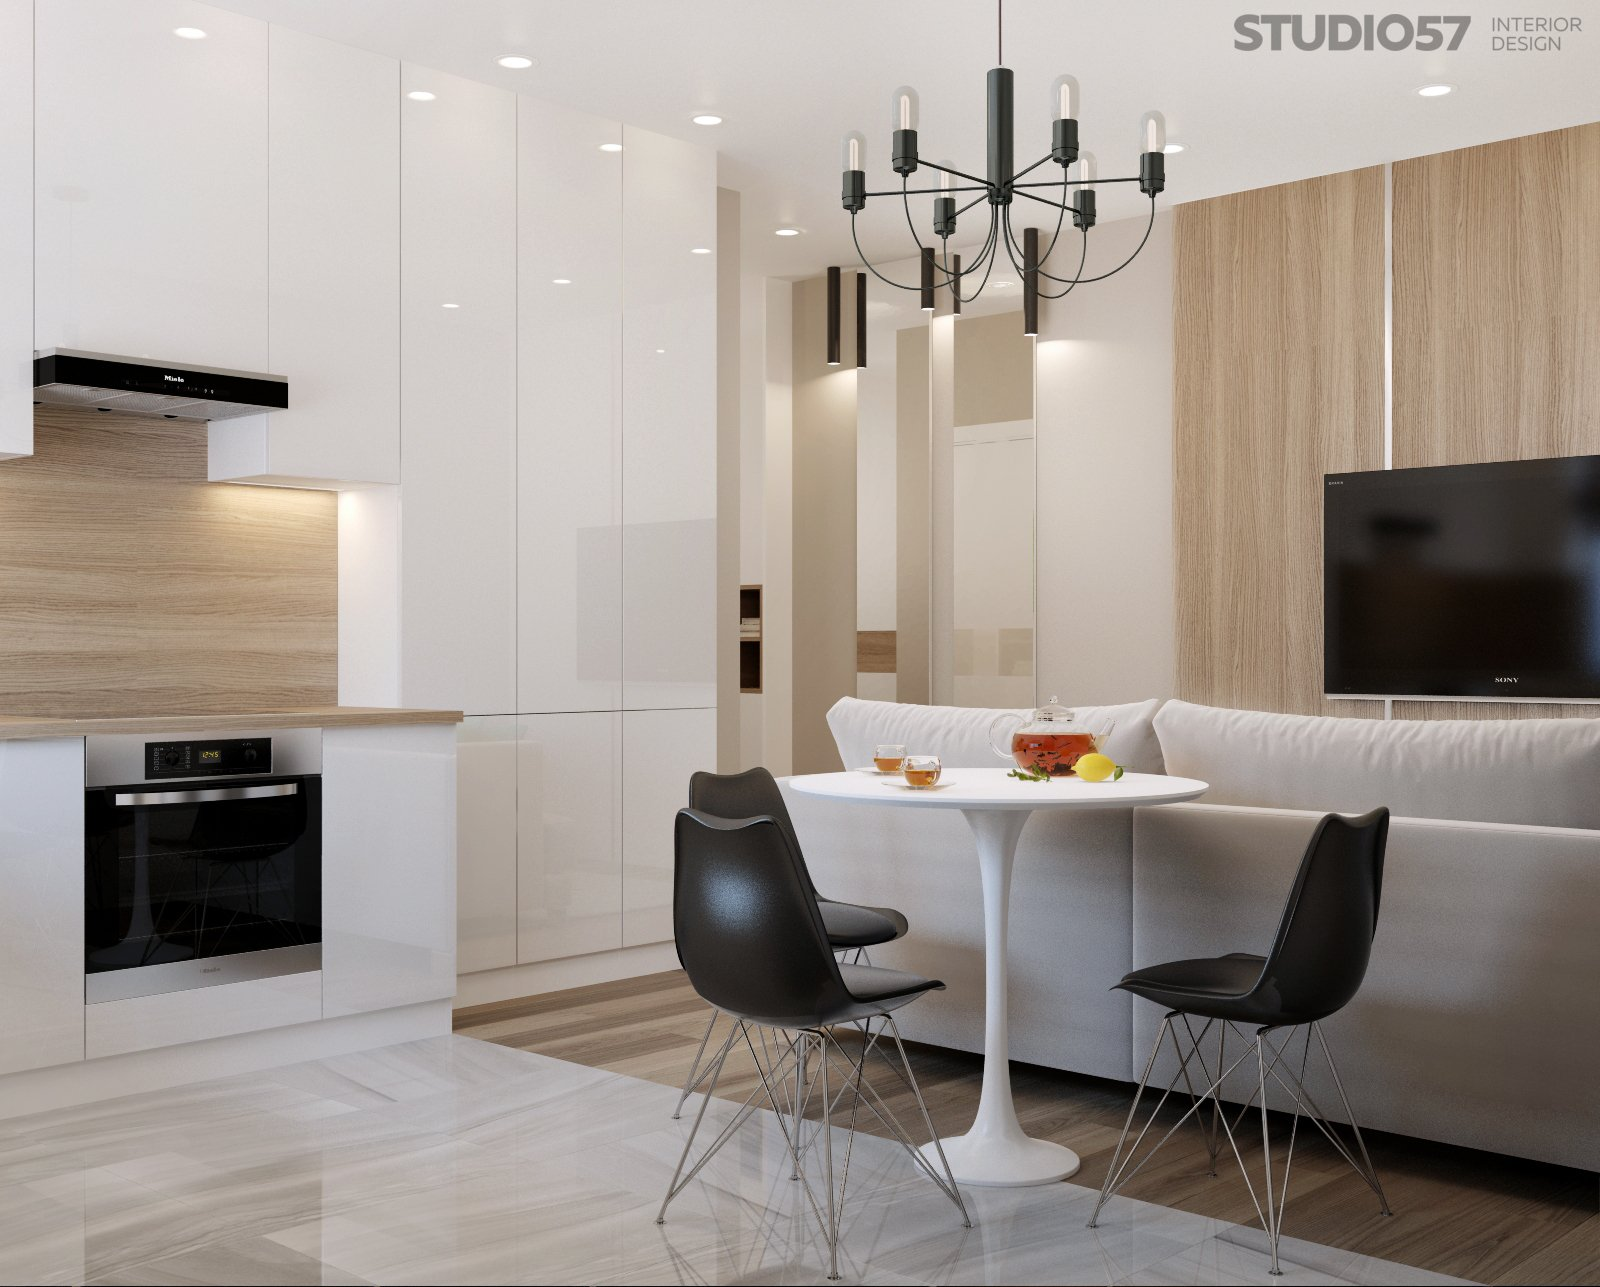 Design studio apartments in a modern style